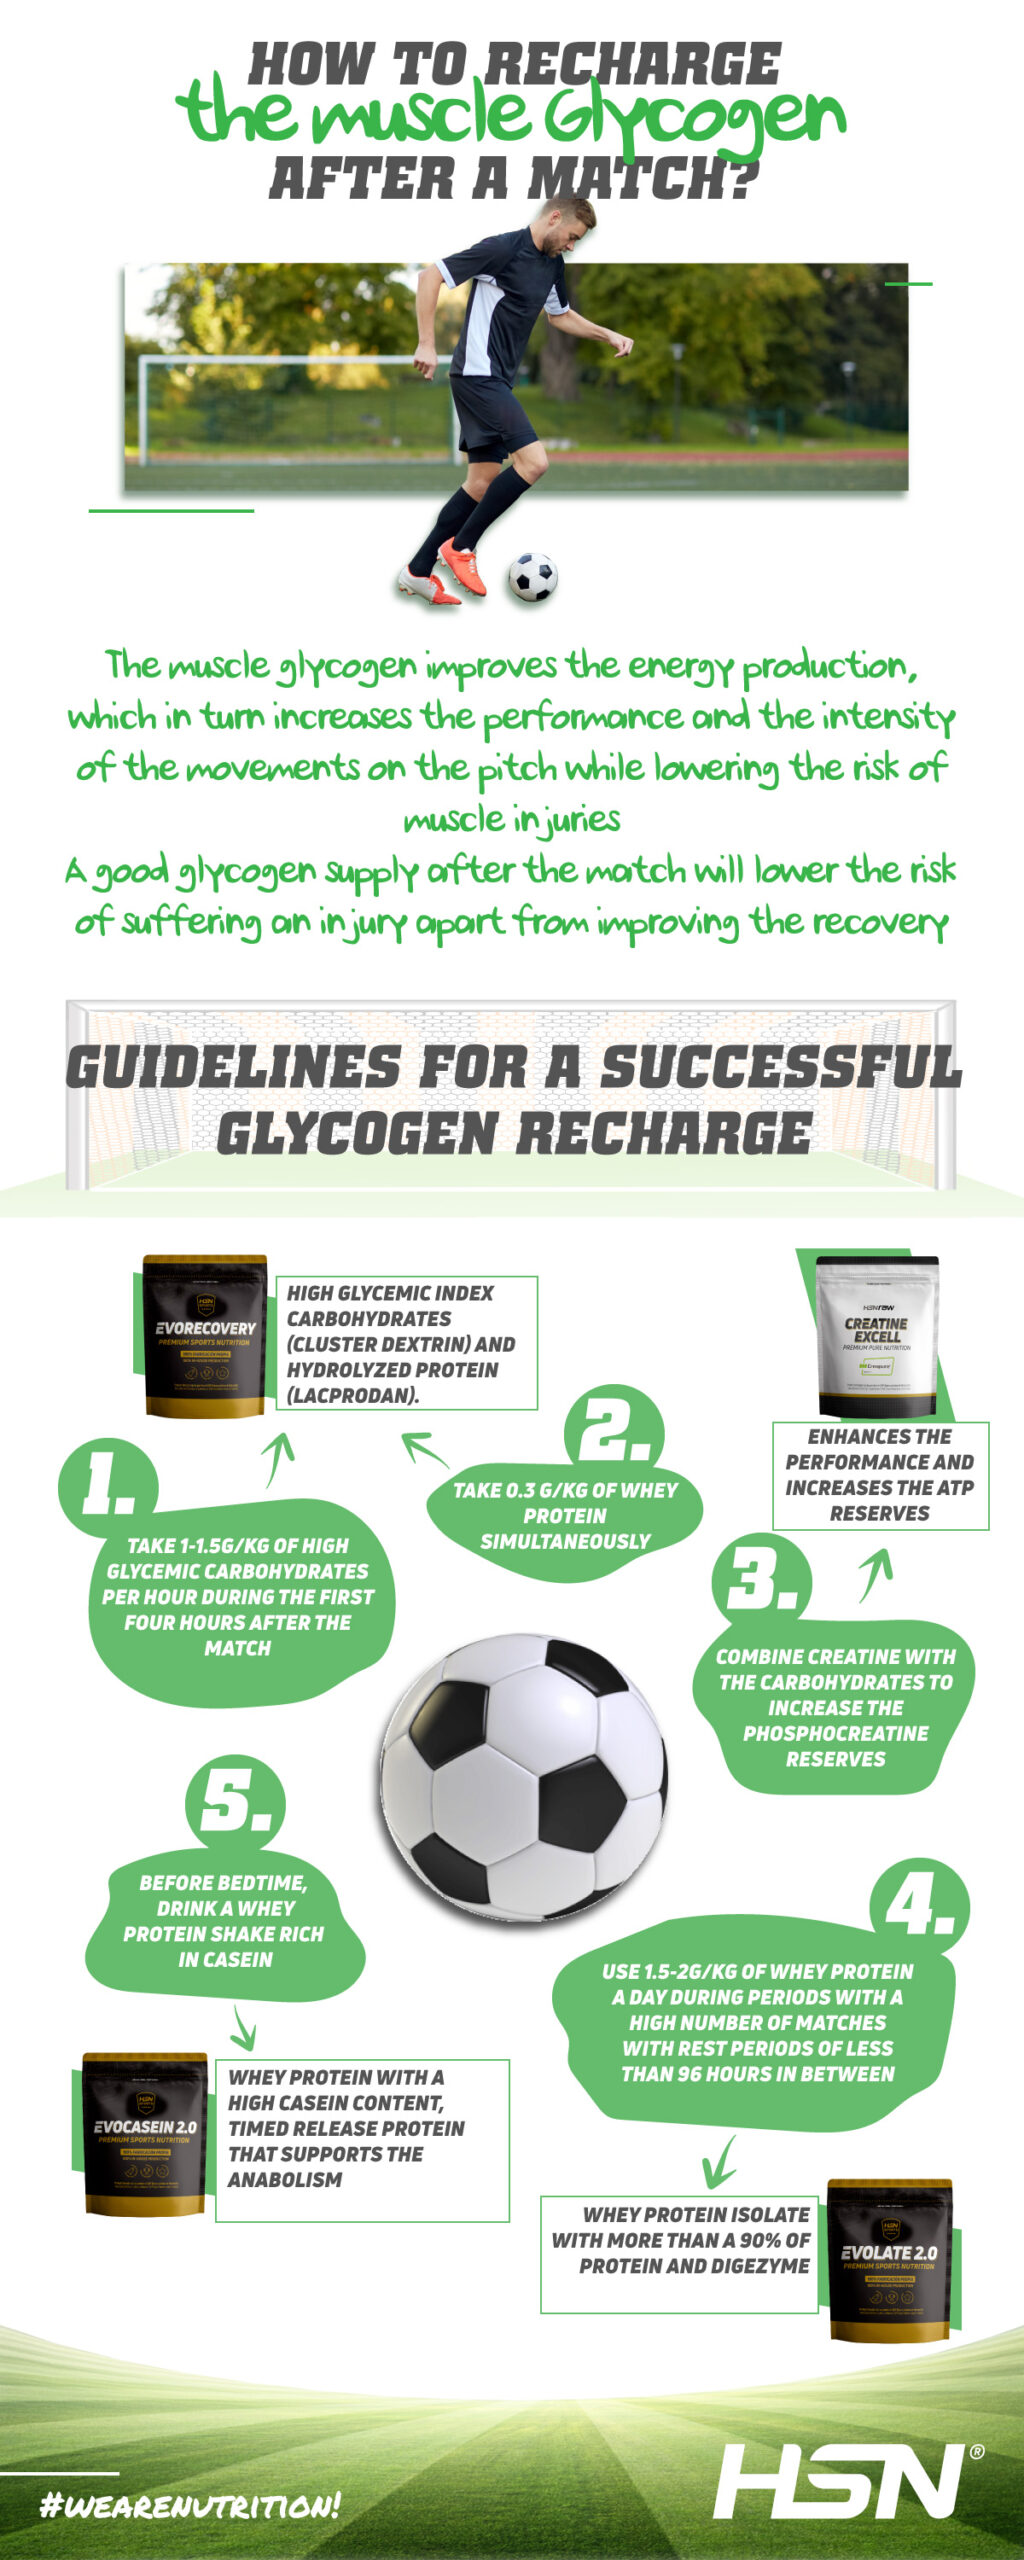 How to recharge the muscle glycogen